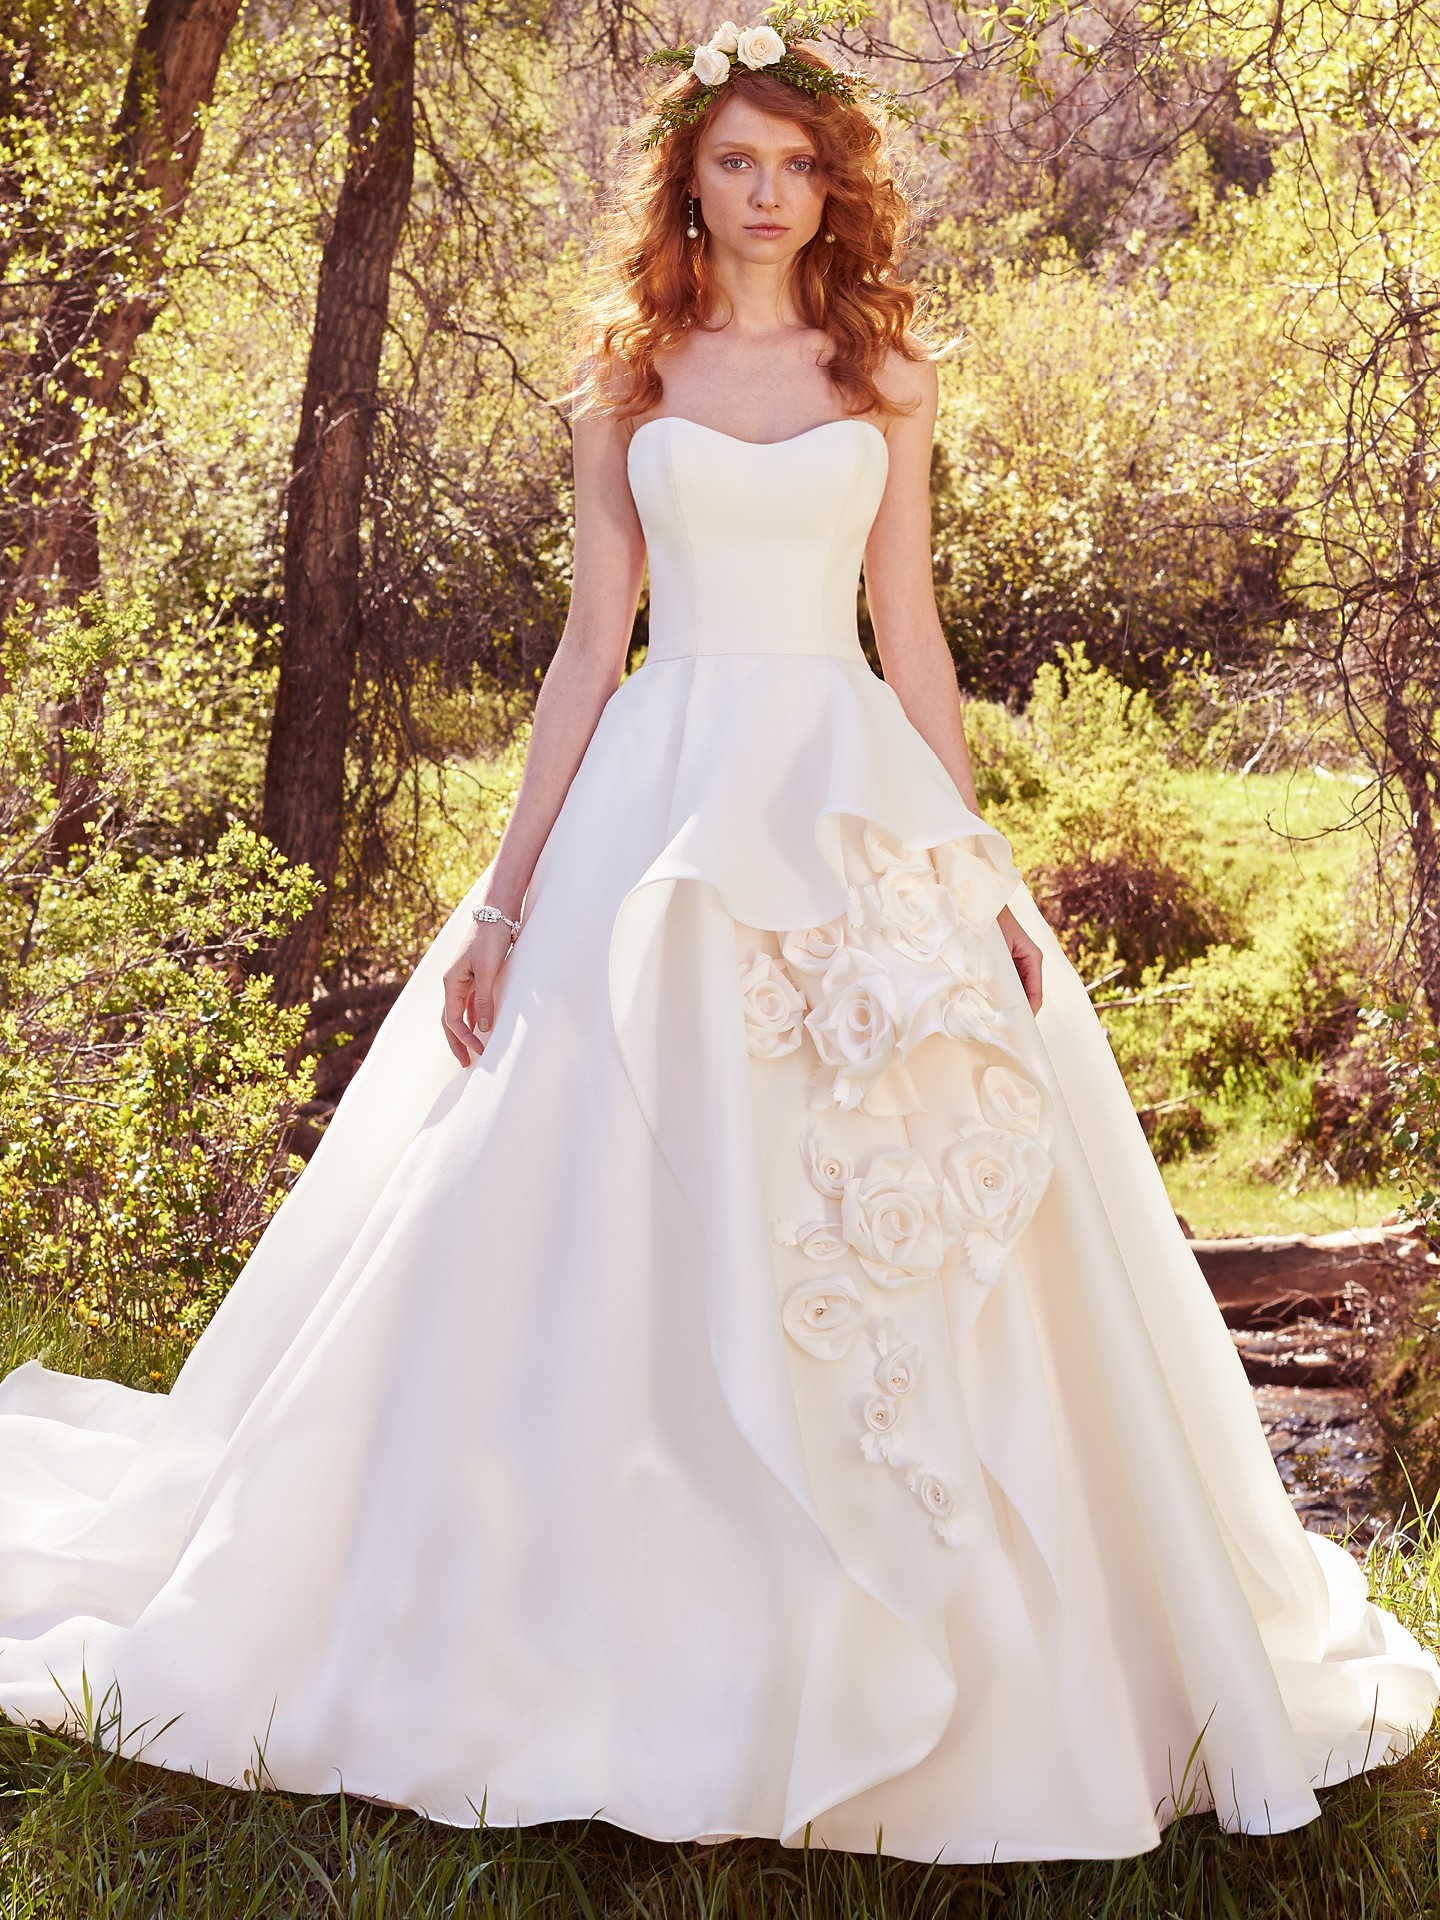 A super modern silhouette in a premium fabrication is a homerun for photos. Wedding Gowns that Look Great in Photos - Bianca wedding dress by Maggie Sottero